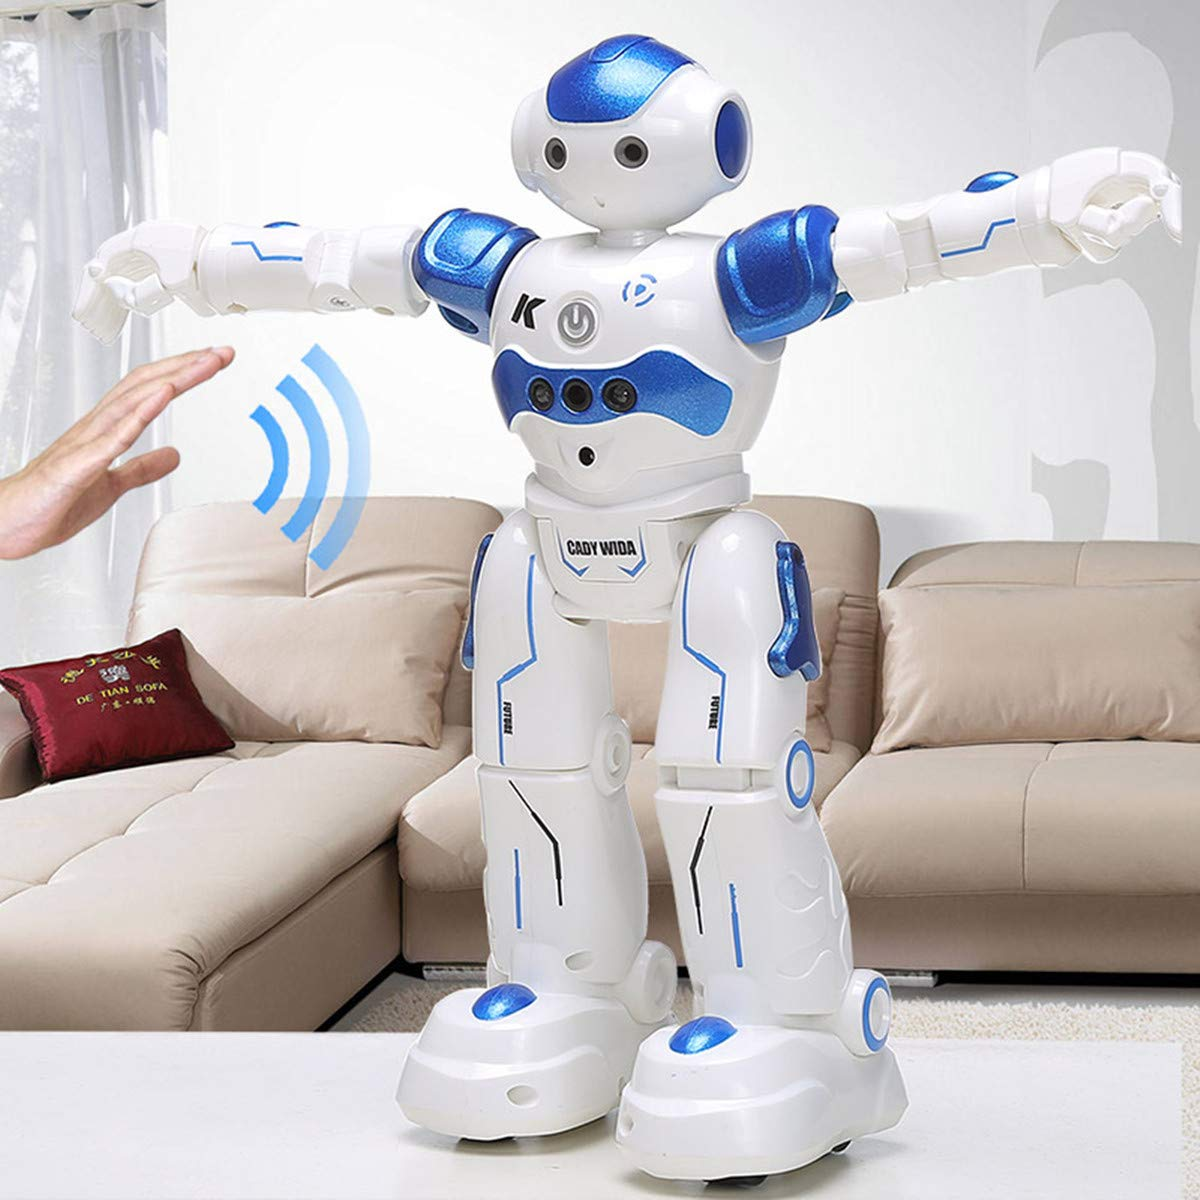 WEECOC Smart Robot Toys Gesture Control Remote Control Robot Kids Toys Birthday Can Singing Dancing Speaking Two Walking Models (White) by WEECOC (Image #9)